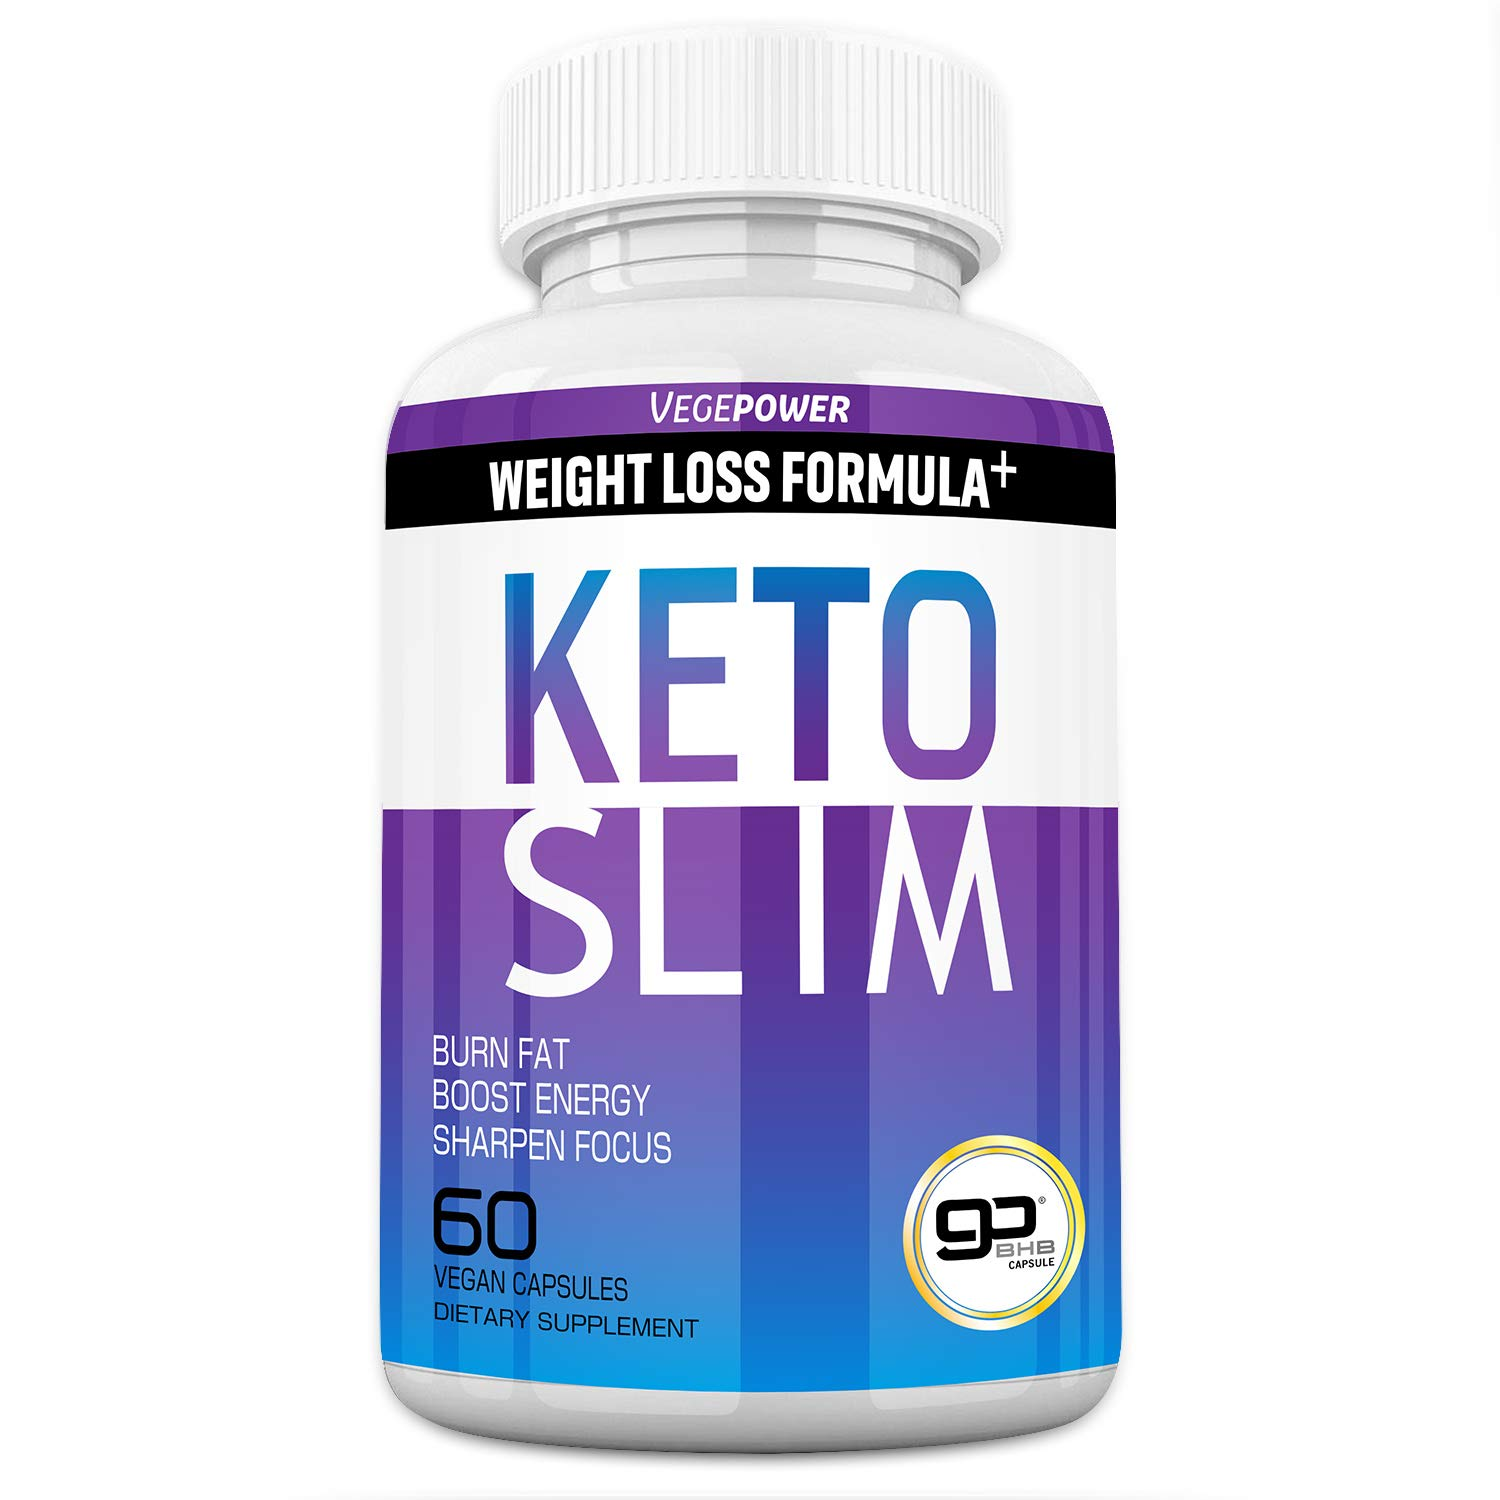 Keto Diet Pills - Extreme Keto Burn Fat Slim Fast - Boost Energy&Mental Focus&Better Sleep - goBHB Includes ACV Supplement for Women & Men - Advanced Carb Blocker Exogenous Ketones - 30 Days' Supply by VEGEPOWER